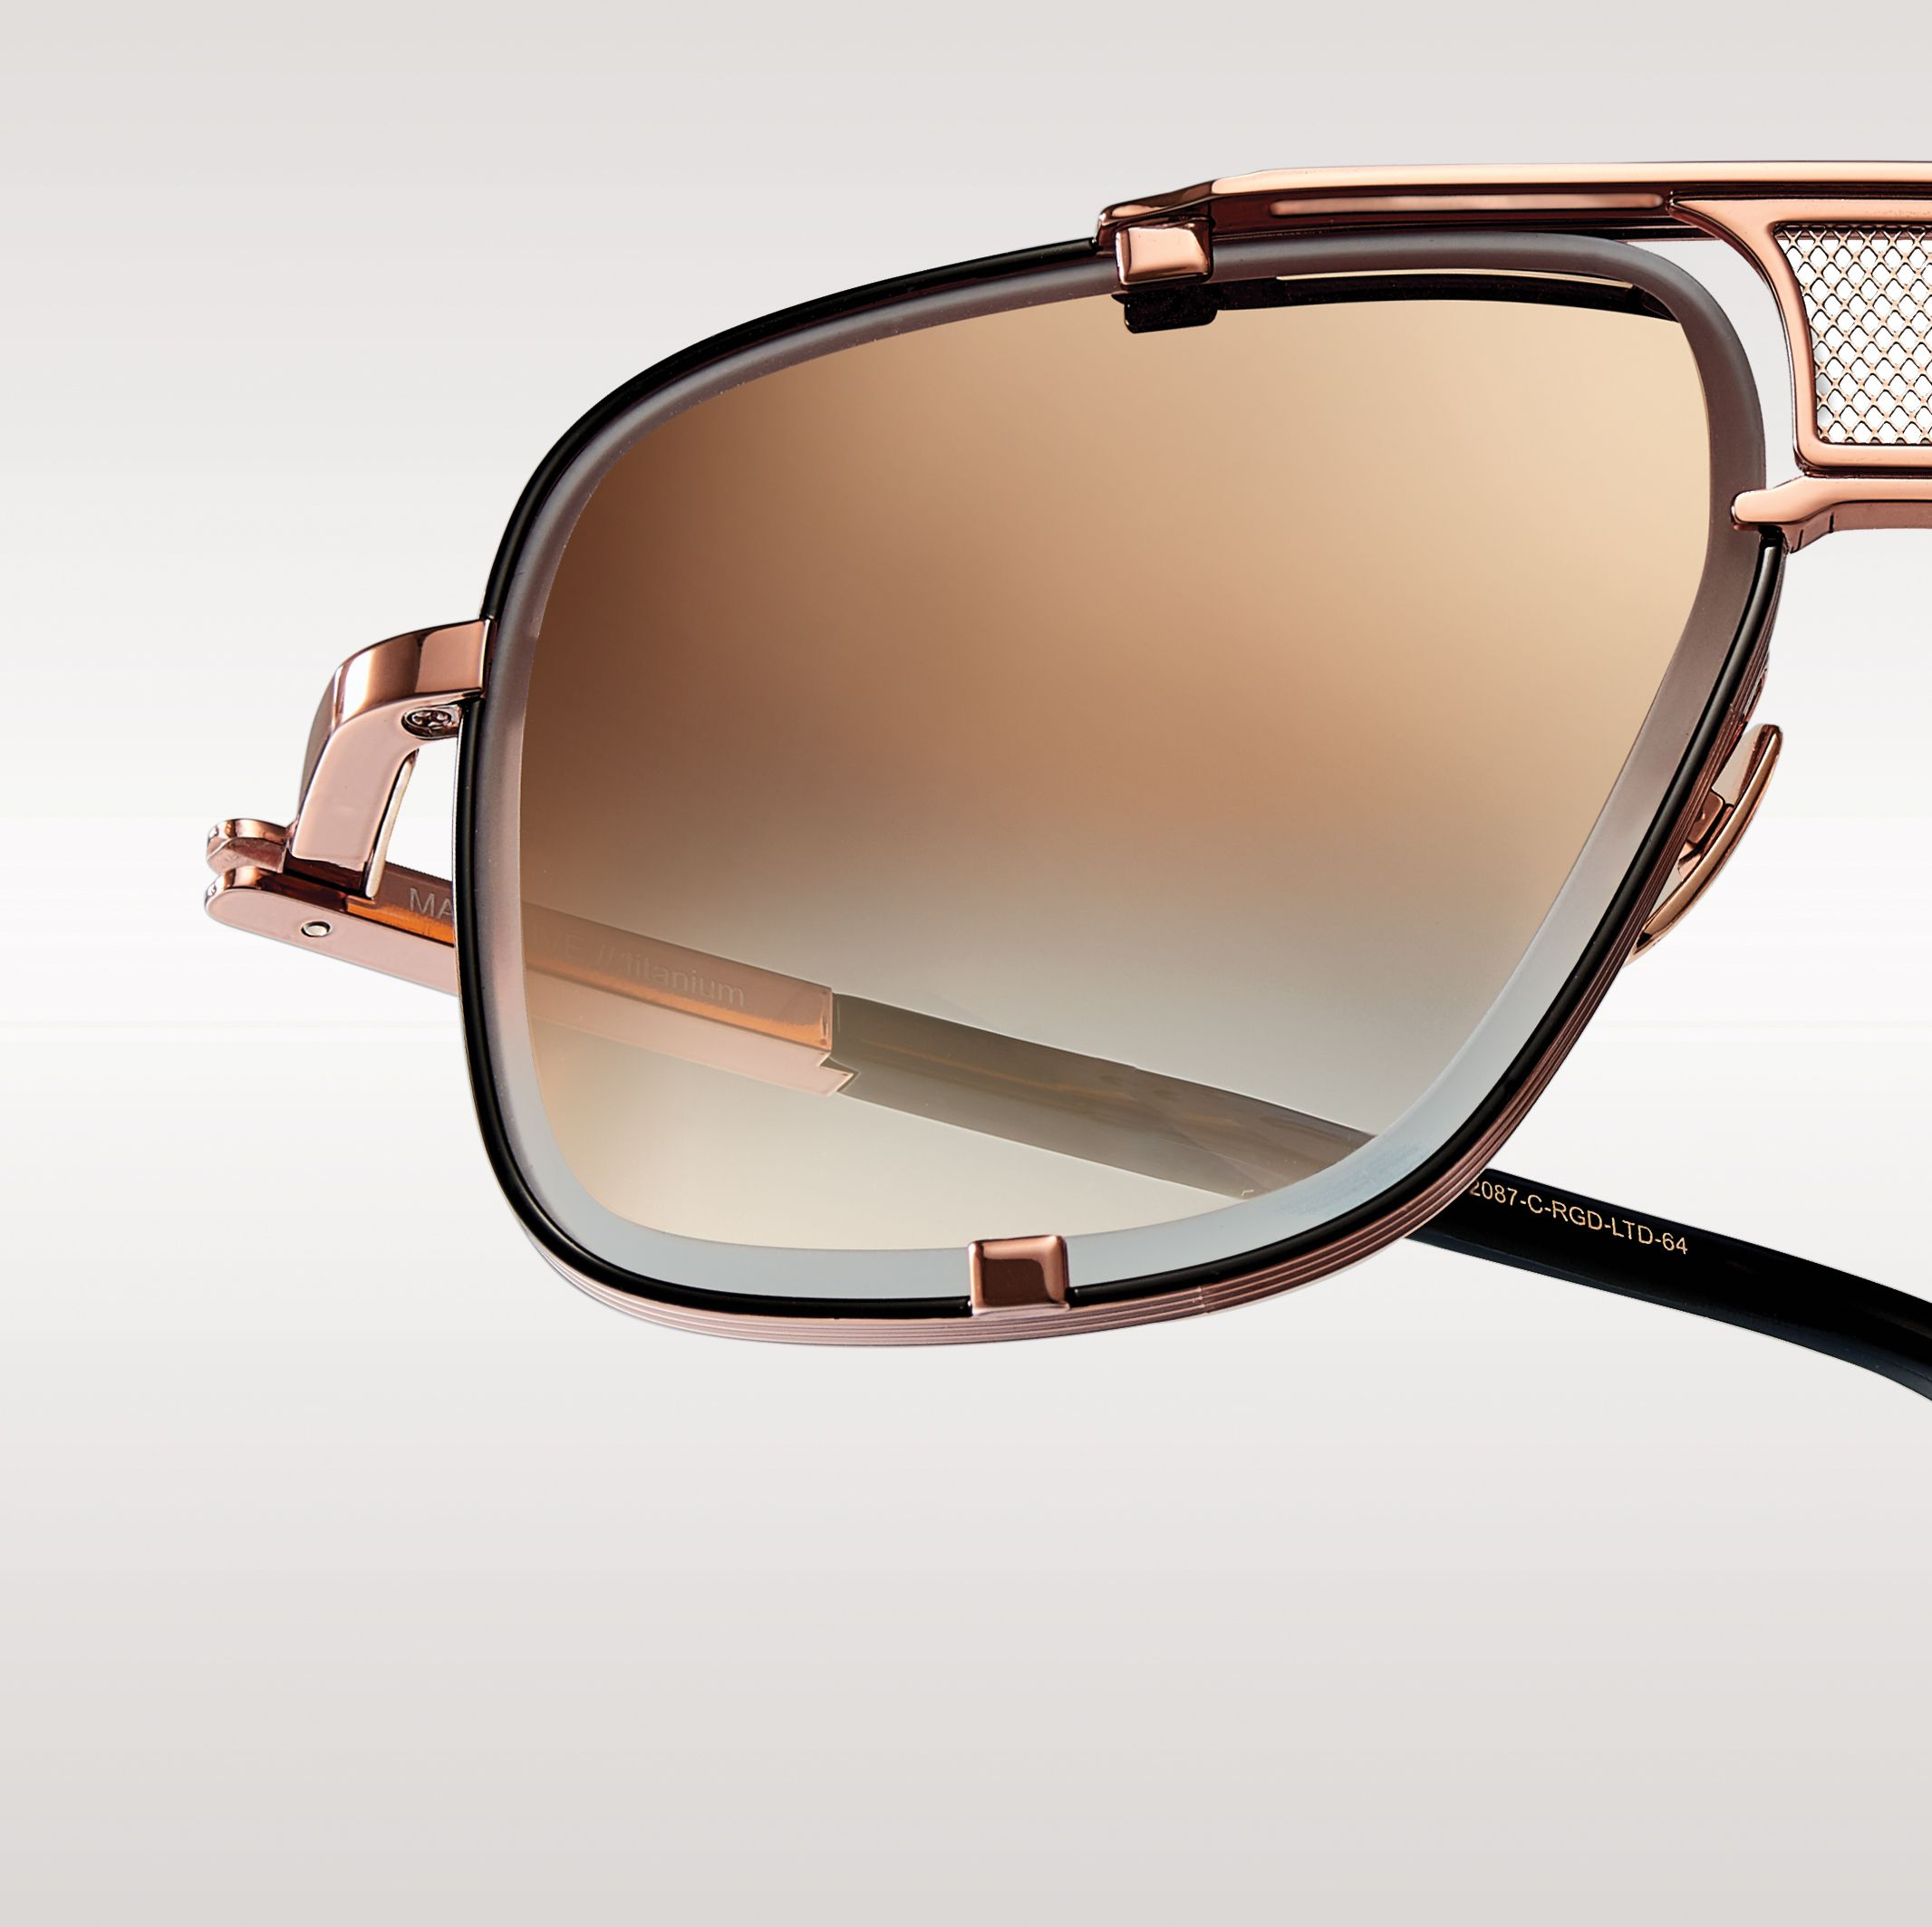 abcbcaa01e The Rose Gold Mach-Five Aviator Sunglasses by DITA Eyewear are a limited  edition run of only 500 pieces.  DITALTD